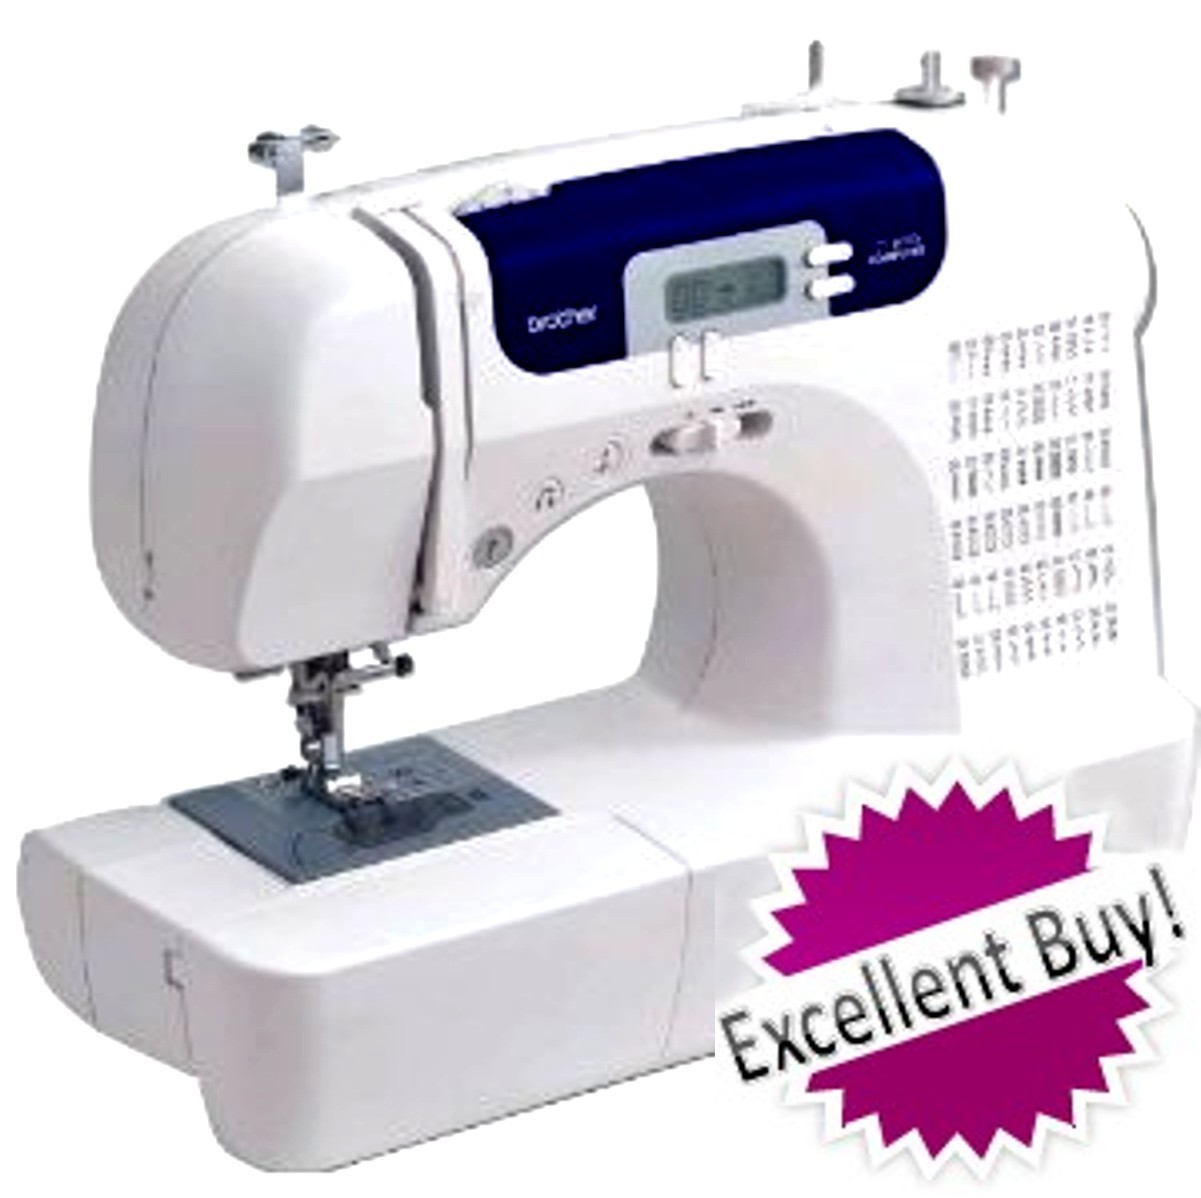 Particular Bror Bror Computerized Sewing Machine Review Bror Computerized Sewing Machine Walmart Bror Se400 Sewing Machine Walmart houzz-02 Brother Sewing Machine Walmart